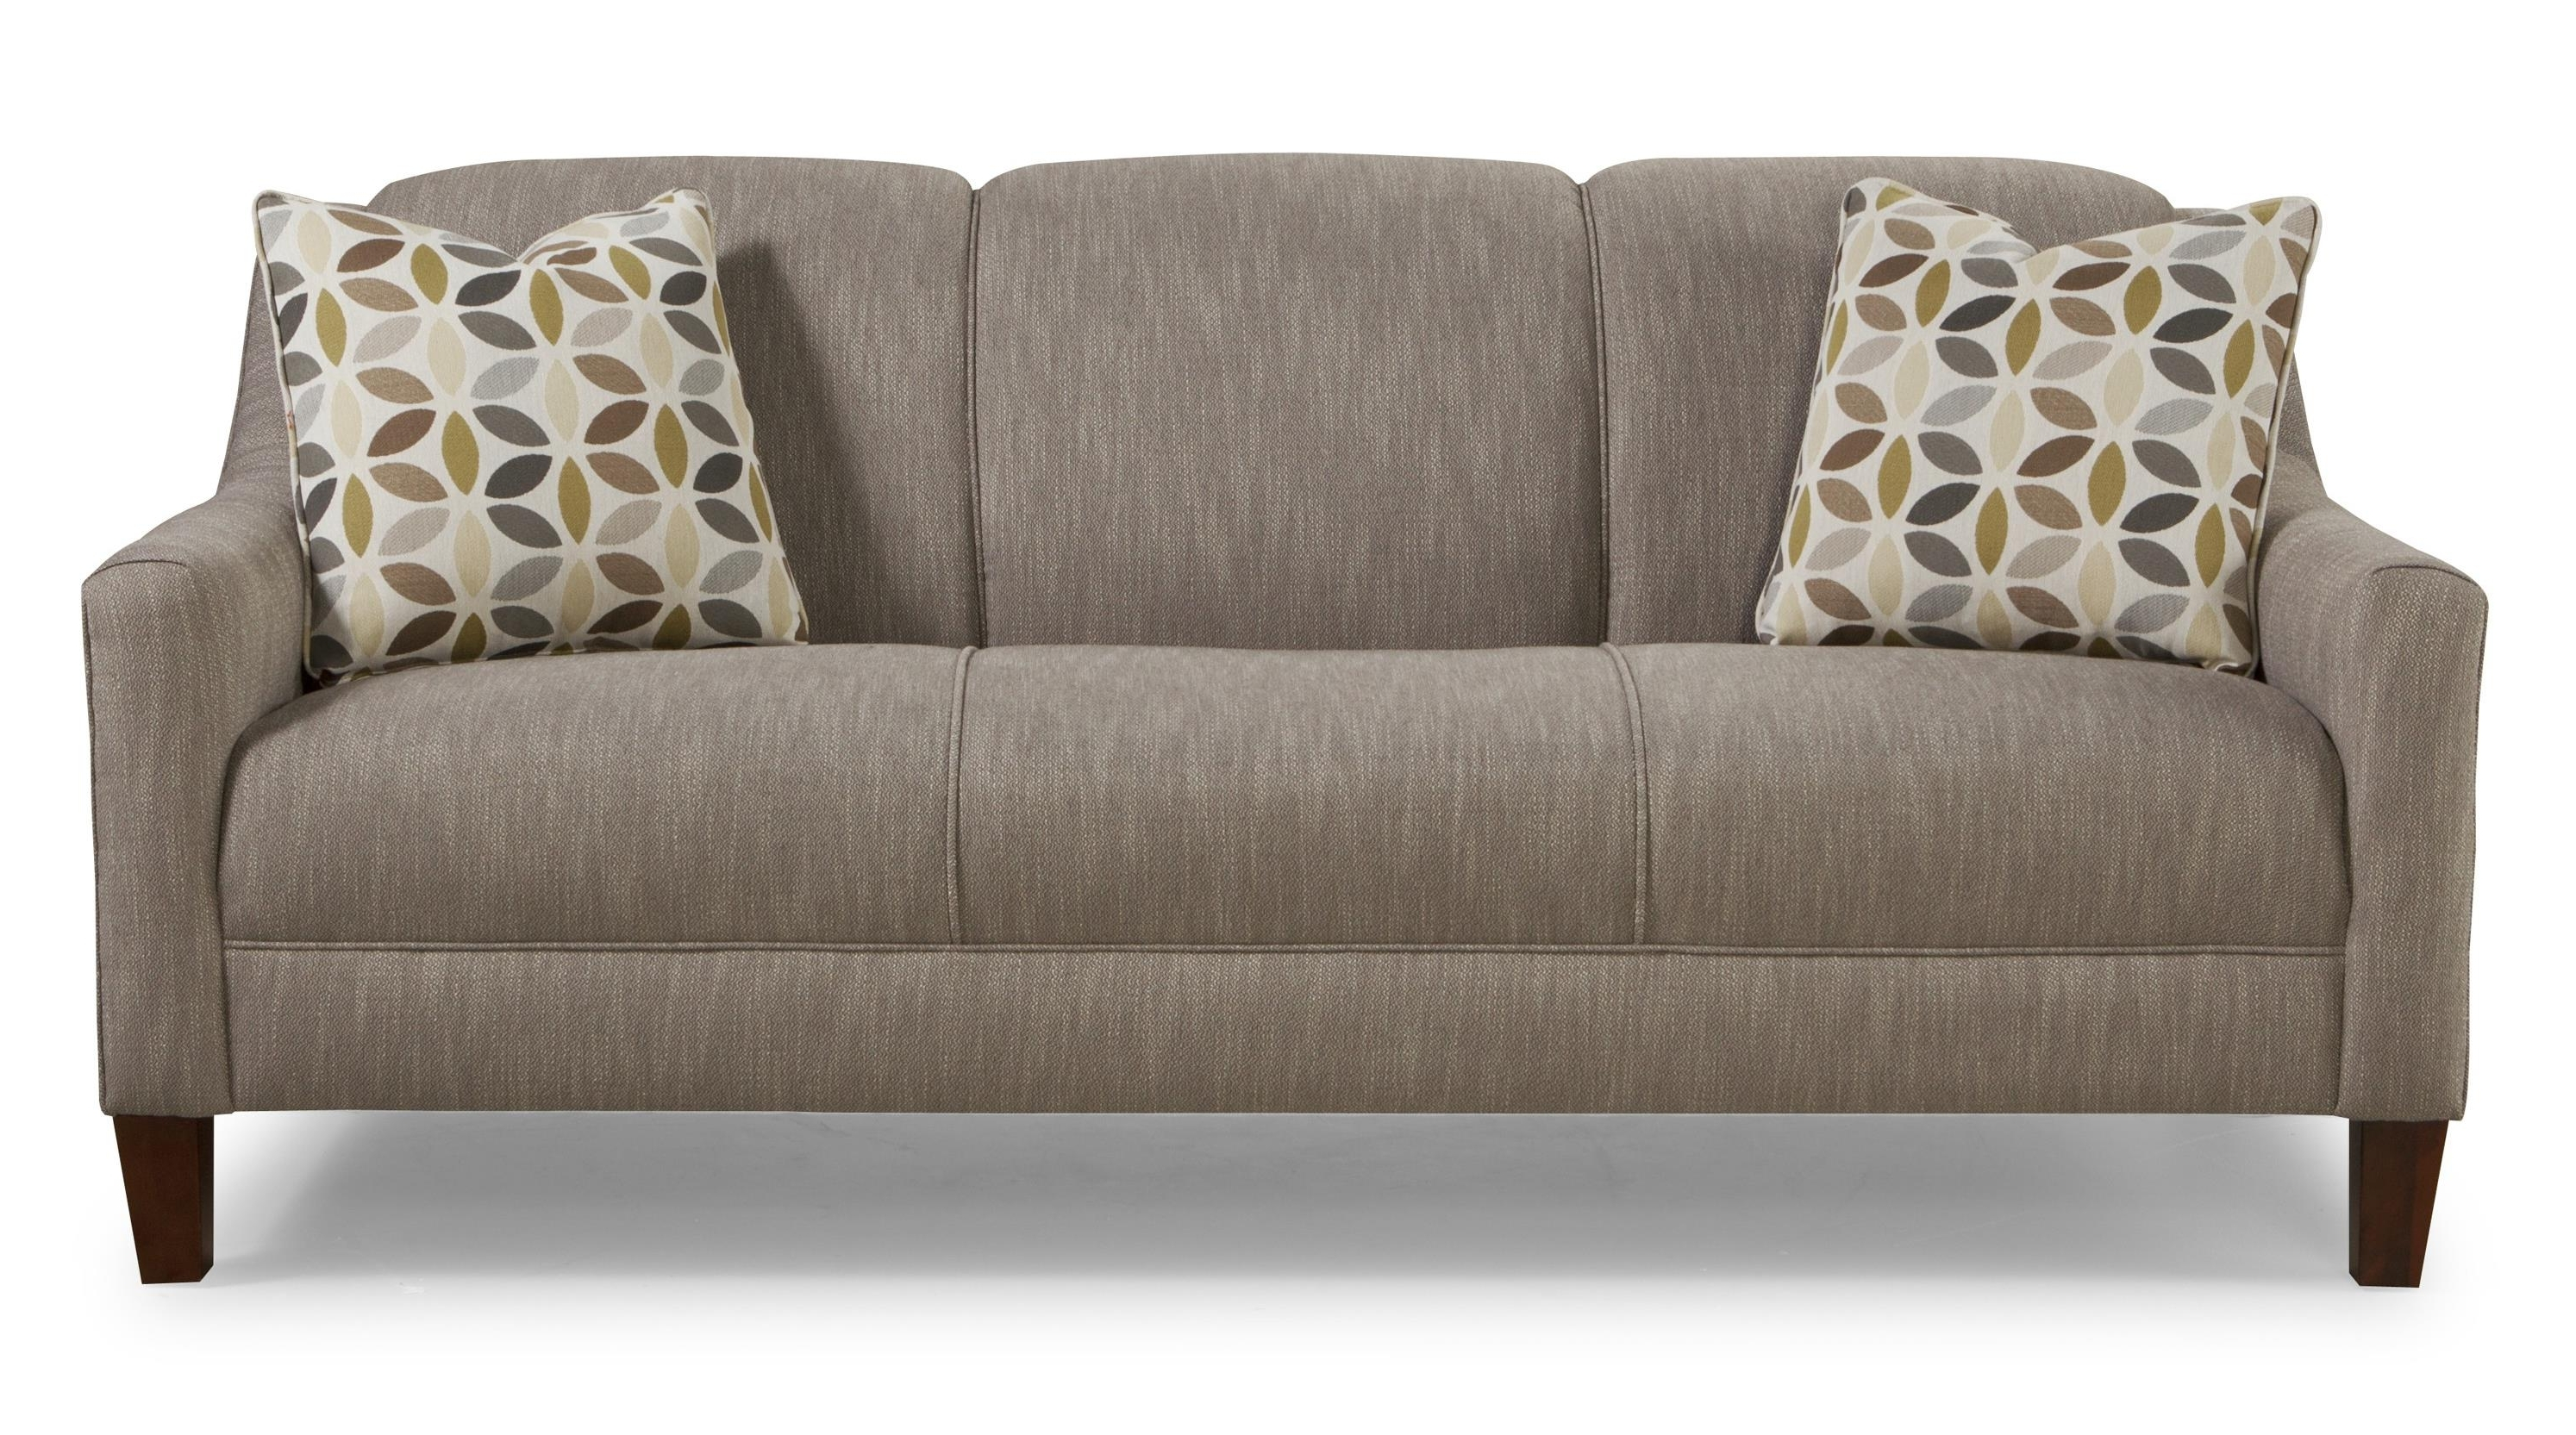 Apartment Size Sofas Pertaining To Well Liked Sofa: Stylish Apartment Size Sofas Small Sectionals, Sofas Under (View 3 of 15)